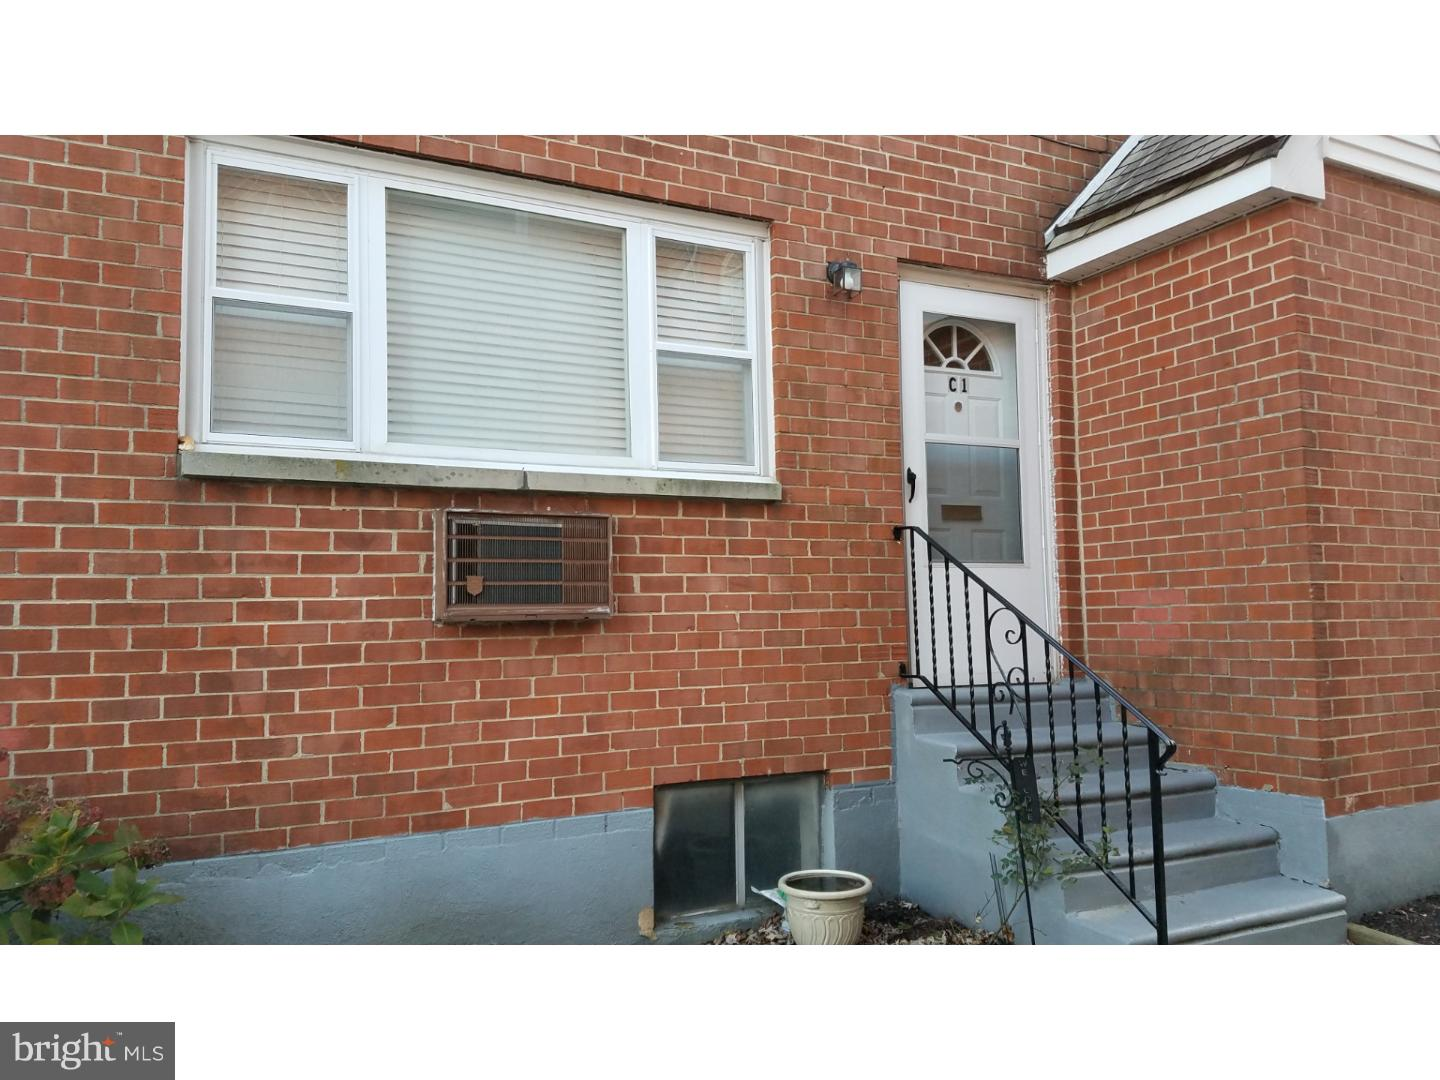 Single Family Home for Sale at 230 E EVESHAM RD #C-1 Glendora, New Jersey 08029 United States